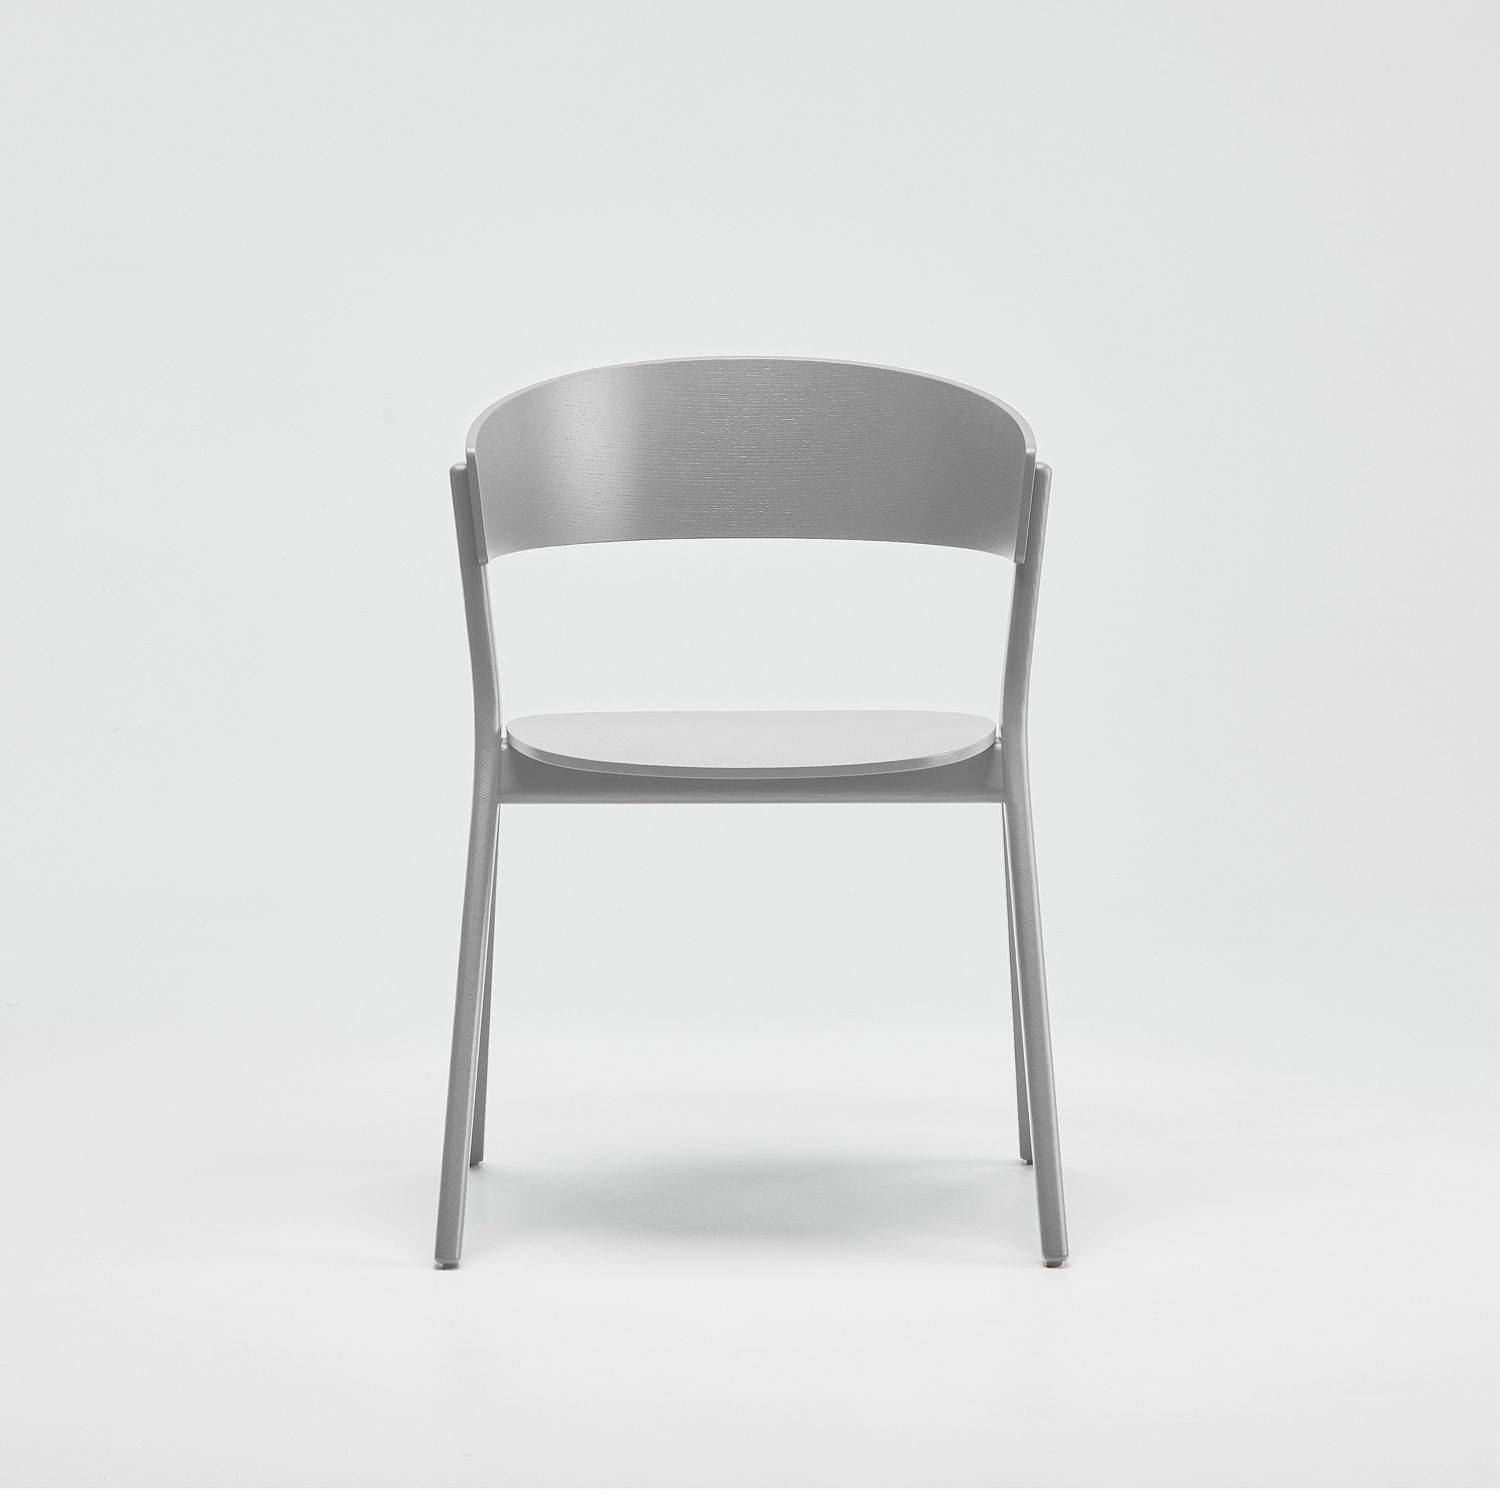 EDITS Circus wood chair in Traffic Grey lacquer